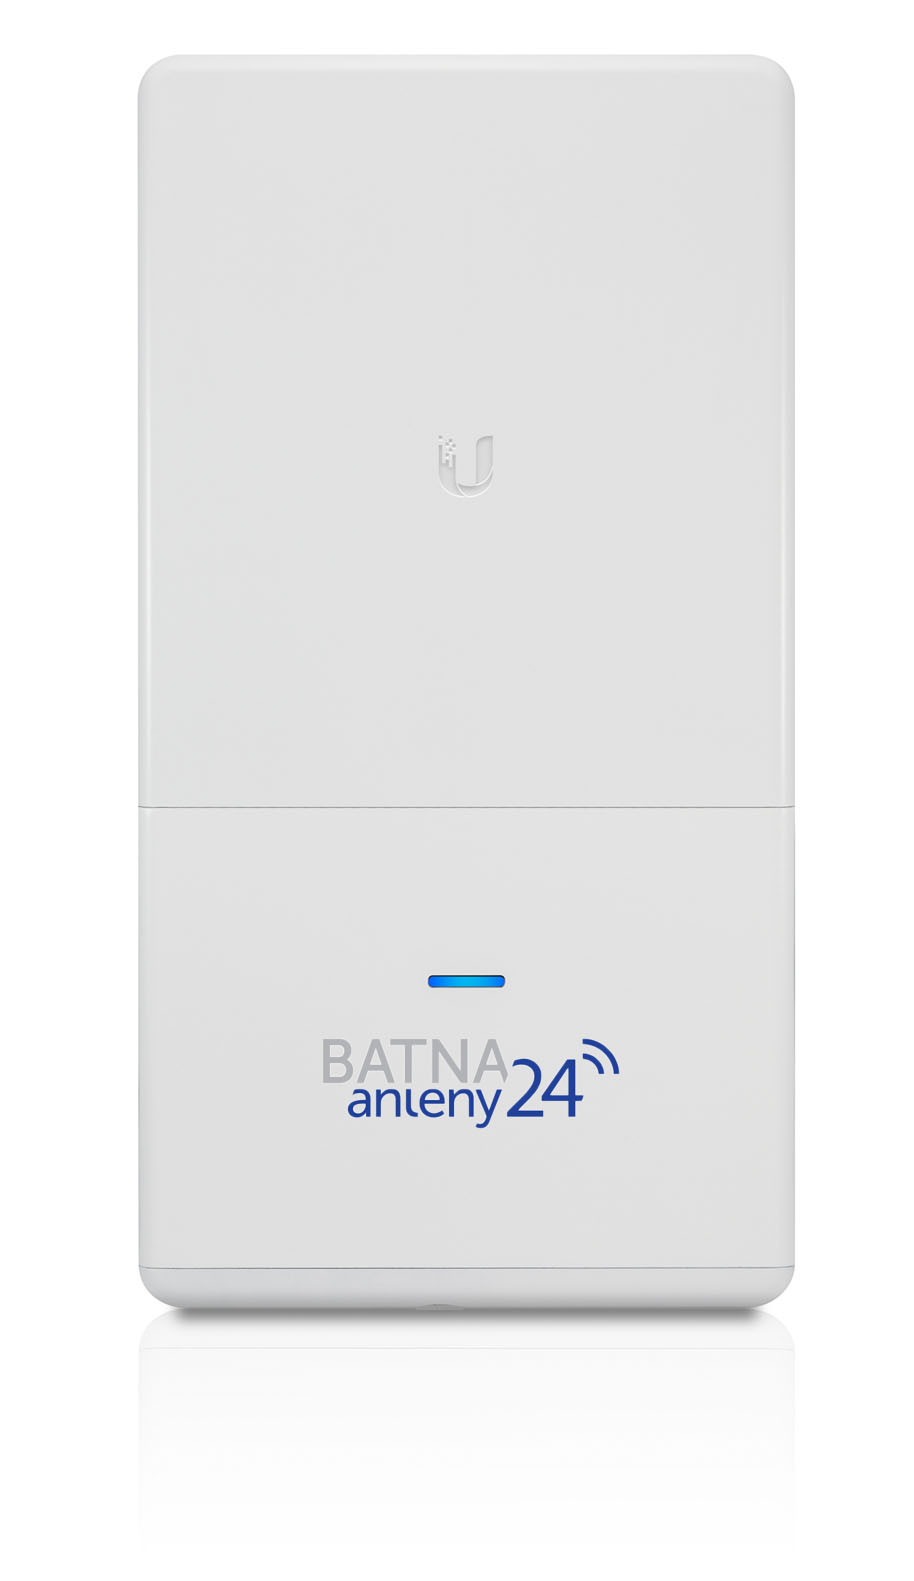 Ubiquiti UNIFI UAP AC OUTDOOR Dual-Band UAP-AC Outdoor, Ubiquiti, 802.11ac, 2 Ghz & 5 Ghz, Access Point AC